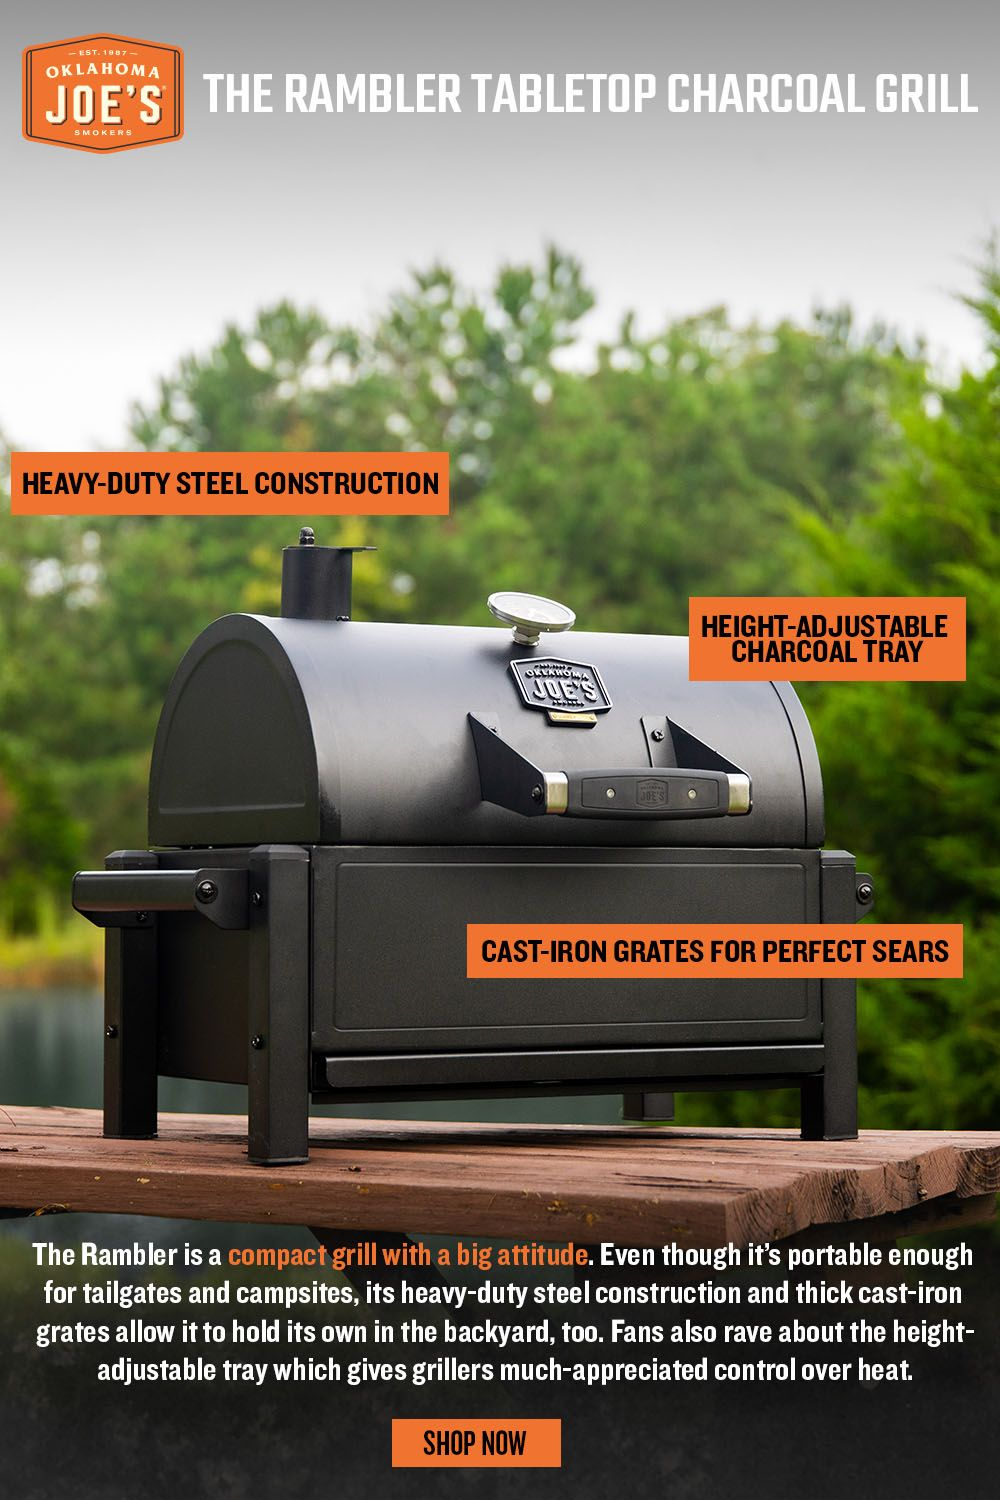 Rambler Tabletop Charcoal Grill Charcoal Grill Grilling Best